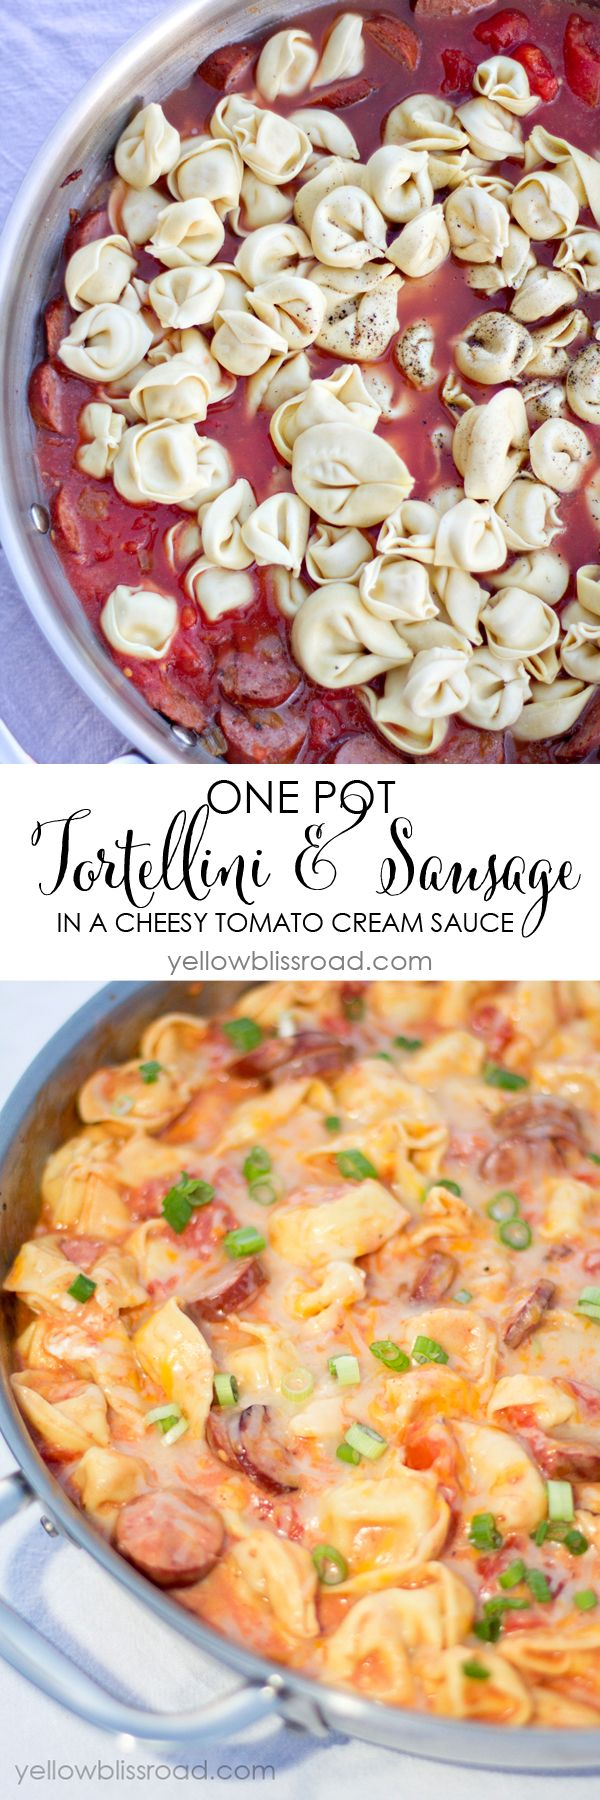 One Pot Tortellini and (Tofurki) Sausage in a Cheesy Tomato Cream Sauce - A delicious meal that's ready in 20 minutes! #onepotmeals